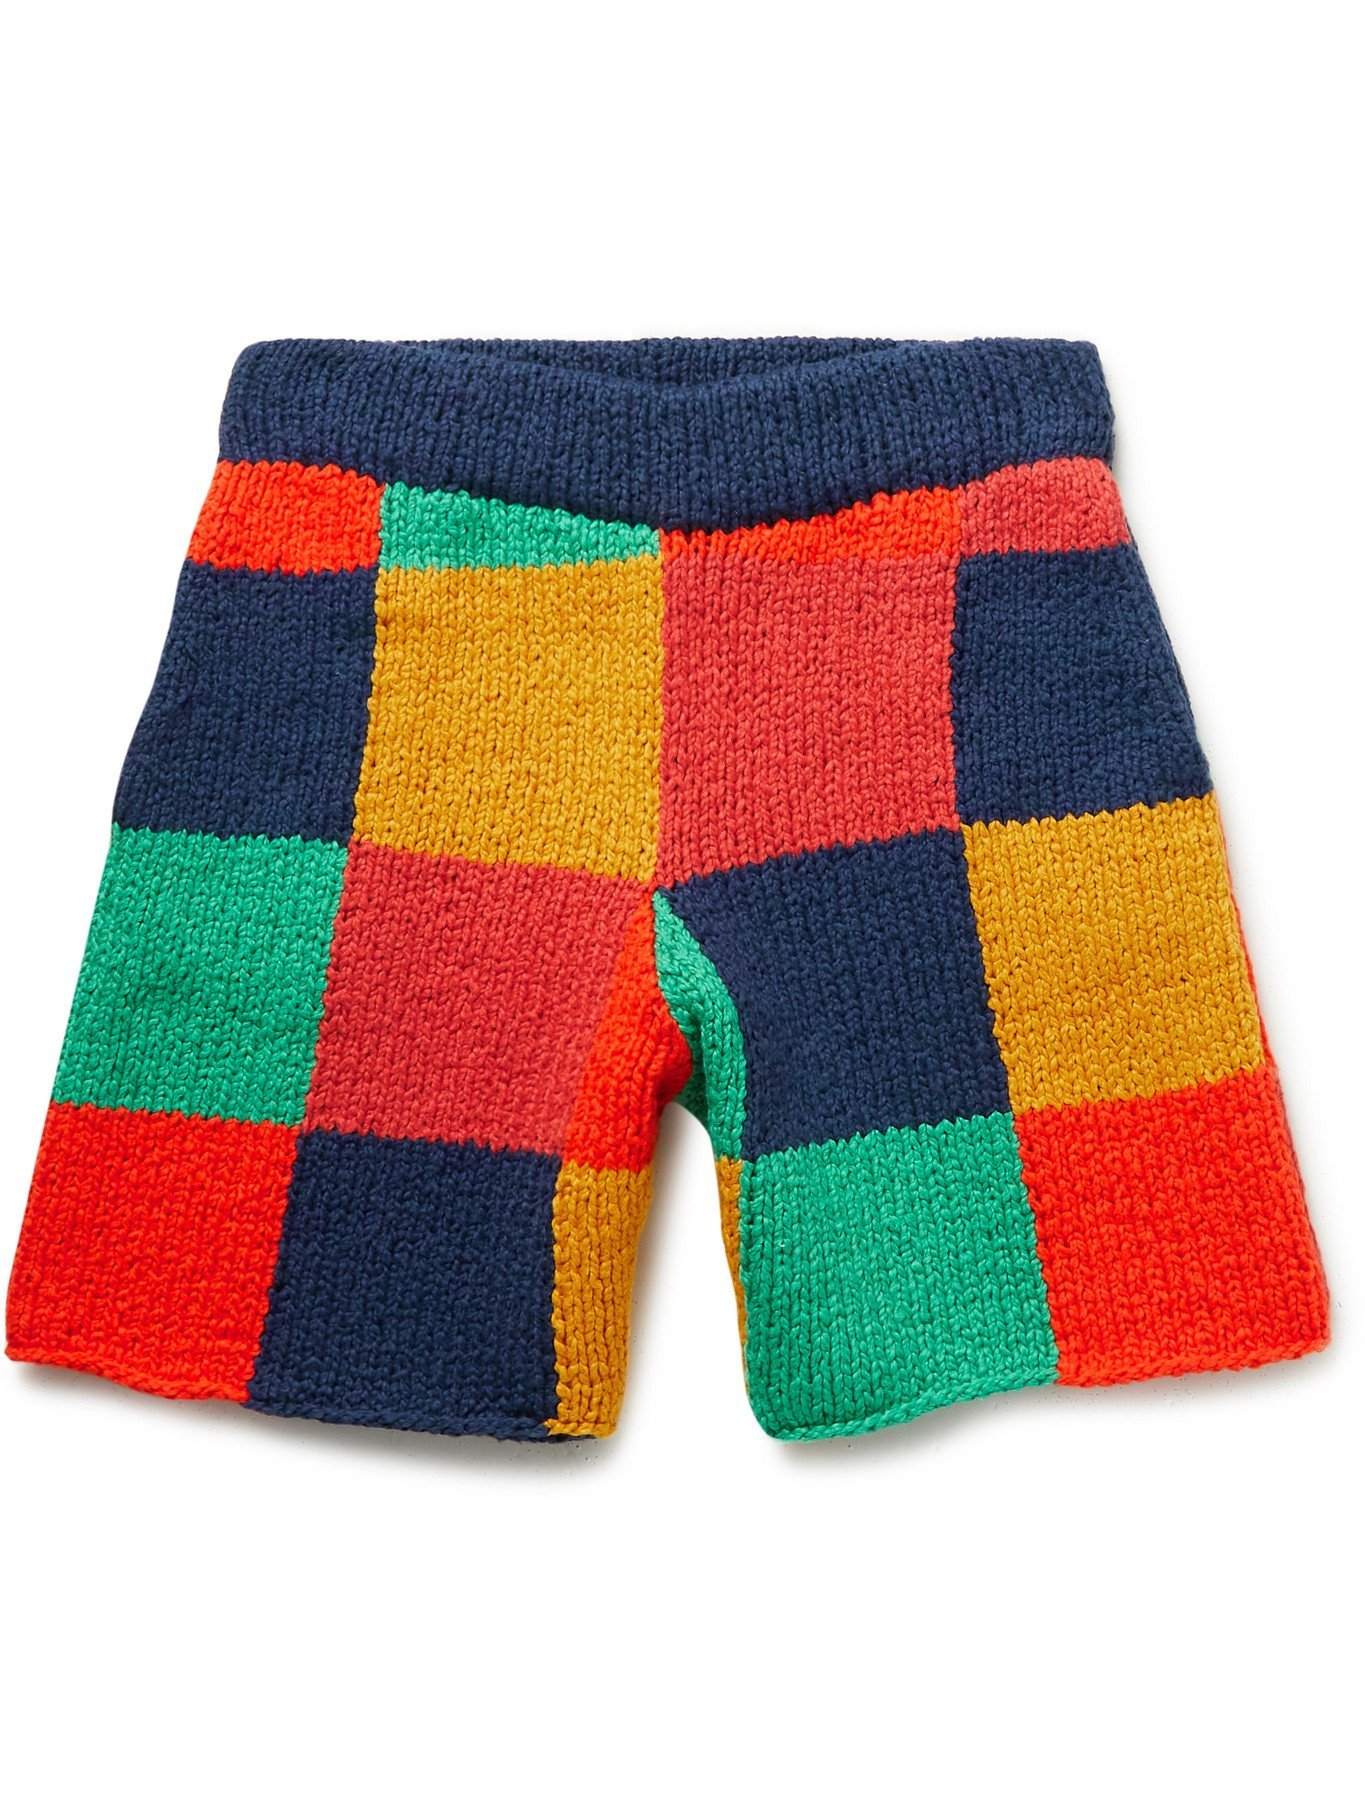 Photo: THE ELDER STATESMAN - Colour-Block Knitted Organic Cotton Shorts - Multi - XS/S